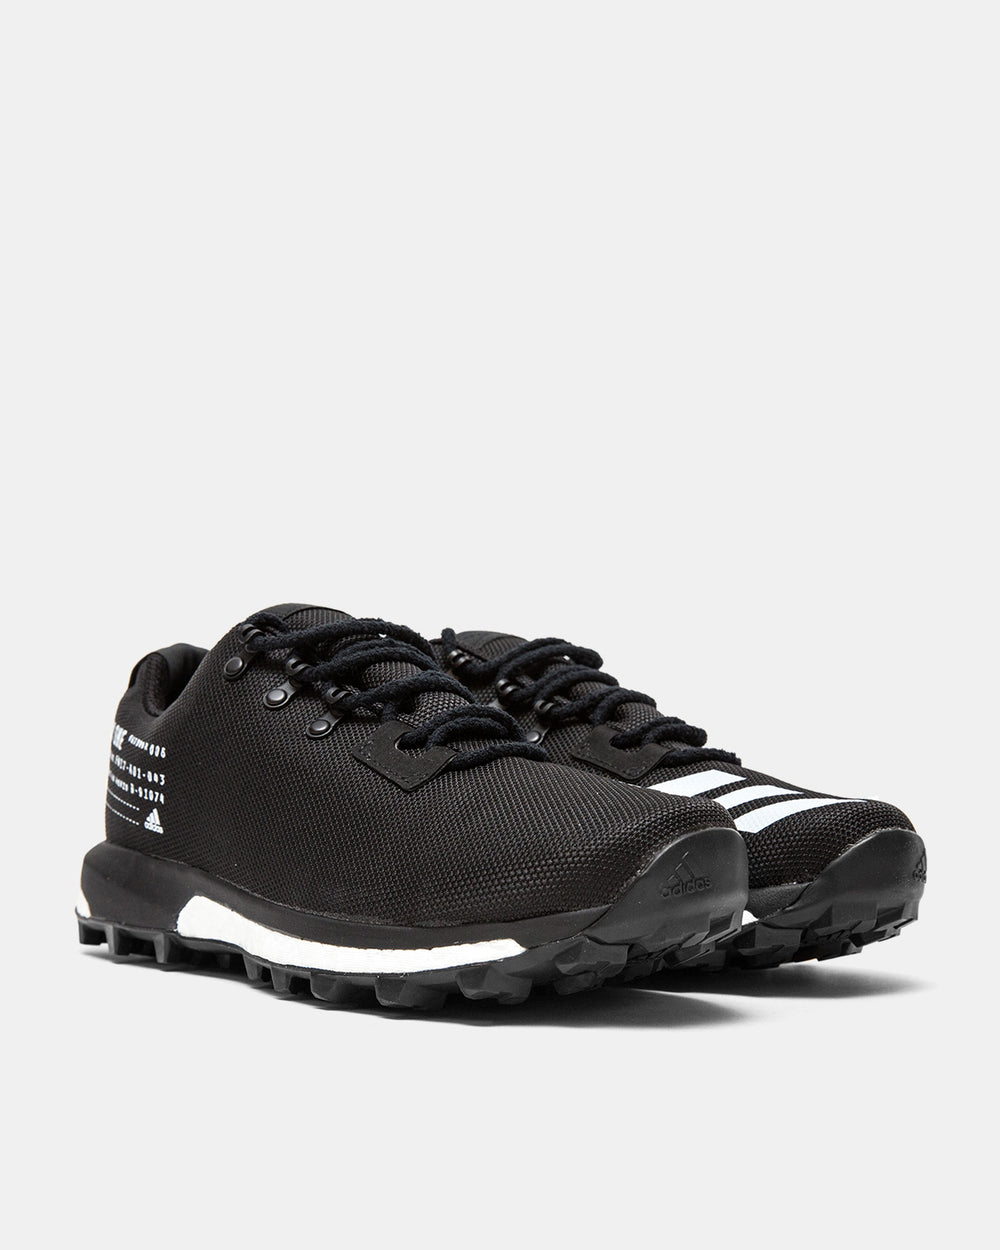 adidas Consortium - Day One Terrex Agravic (Black | White)